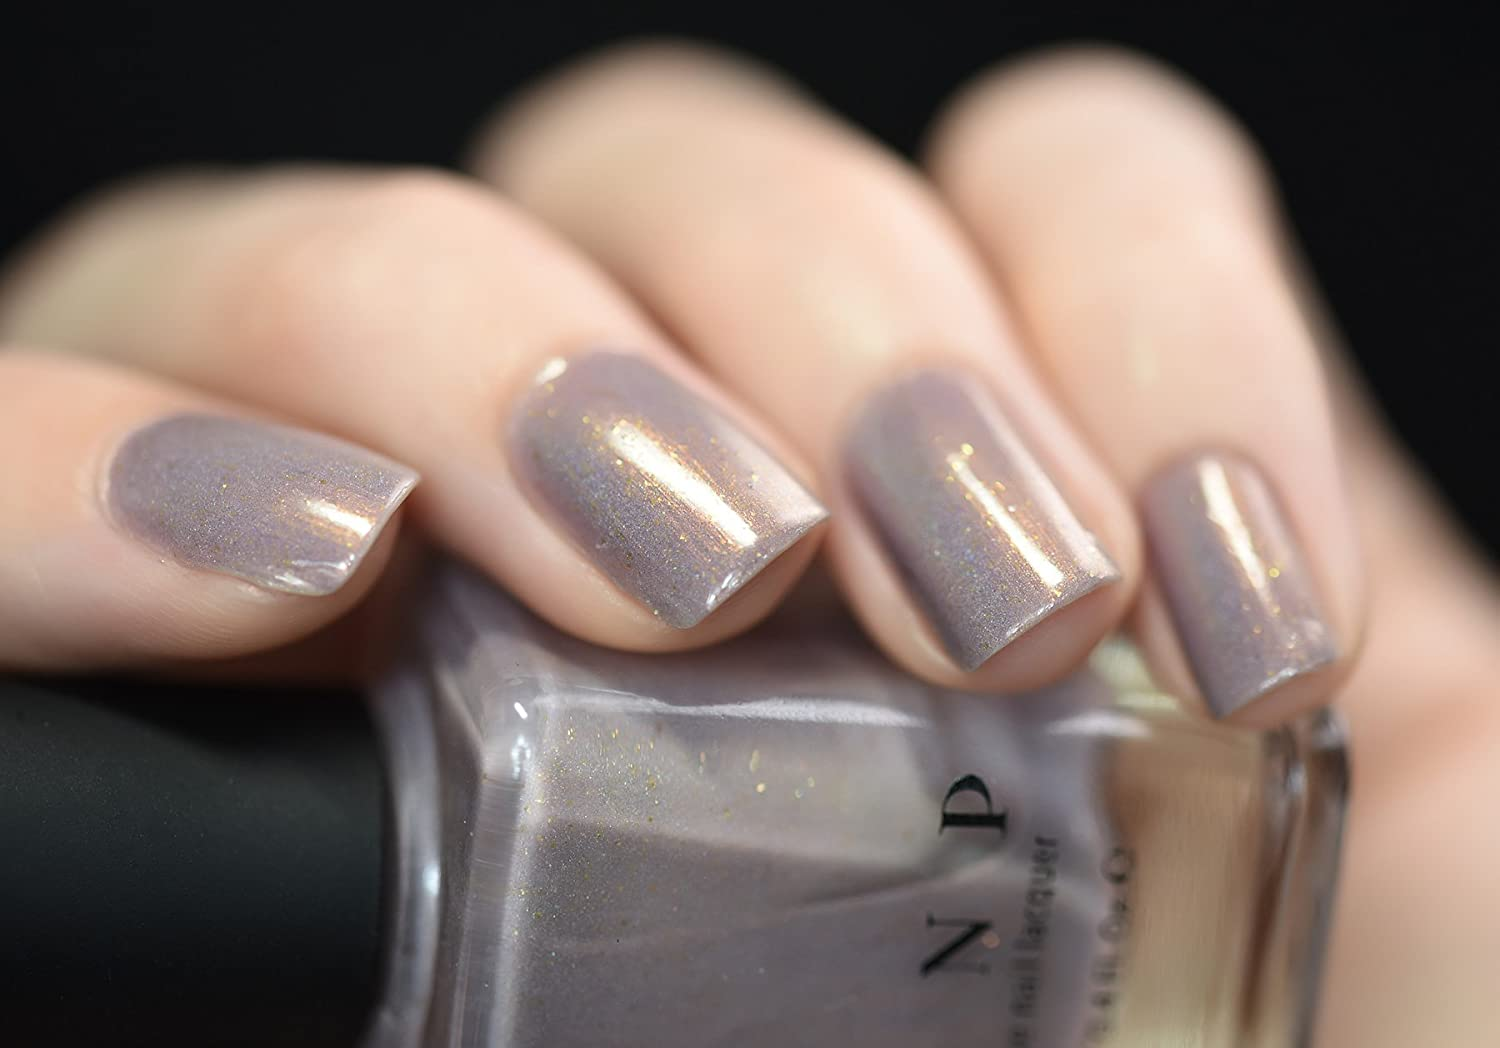 Amazon.com : ILNP Long Walks - Shimmery Taupe Holographic Nail ...